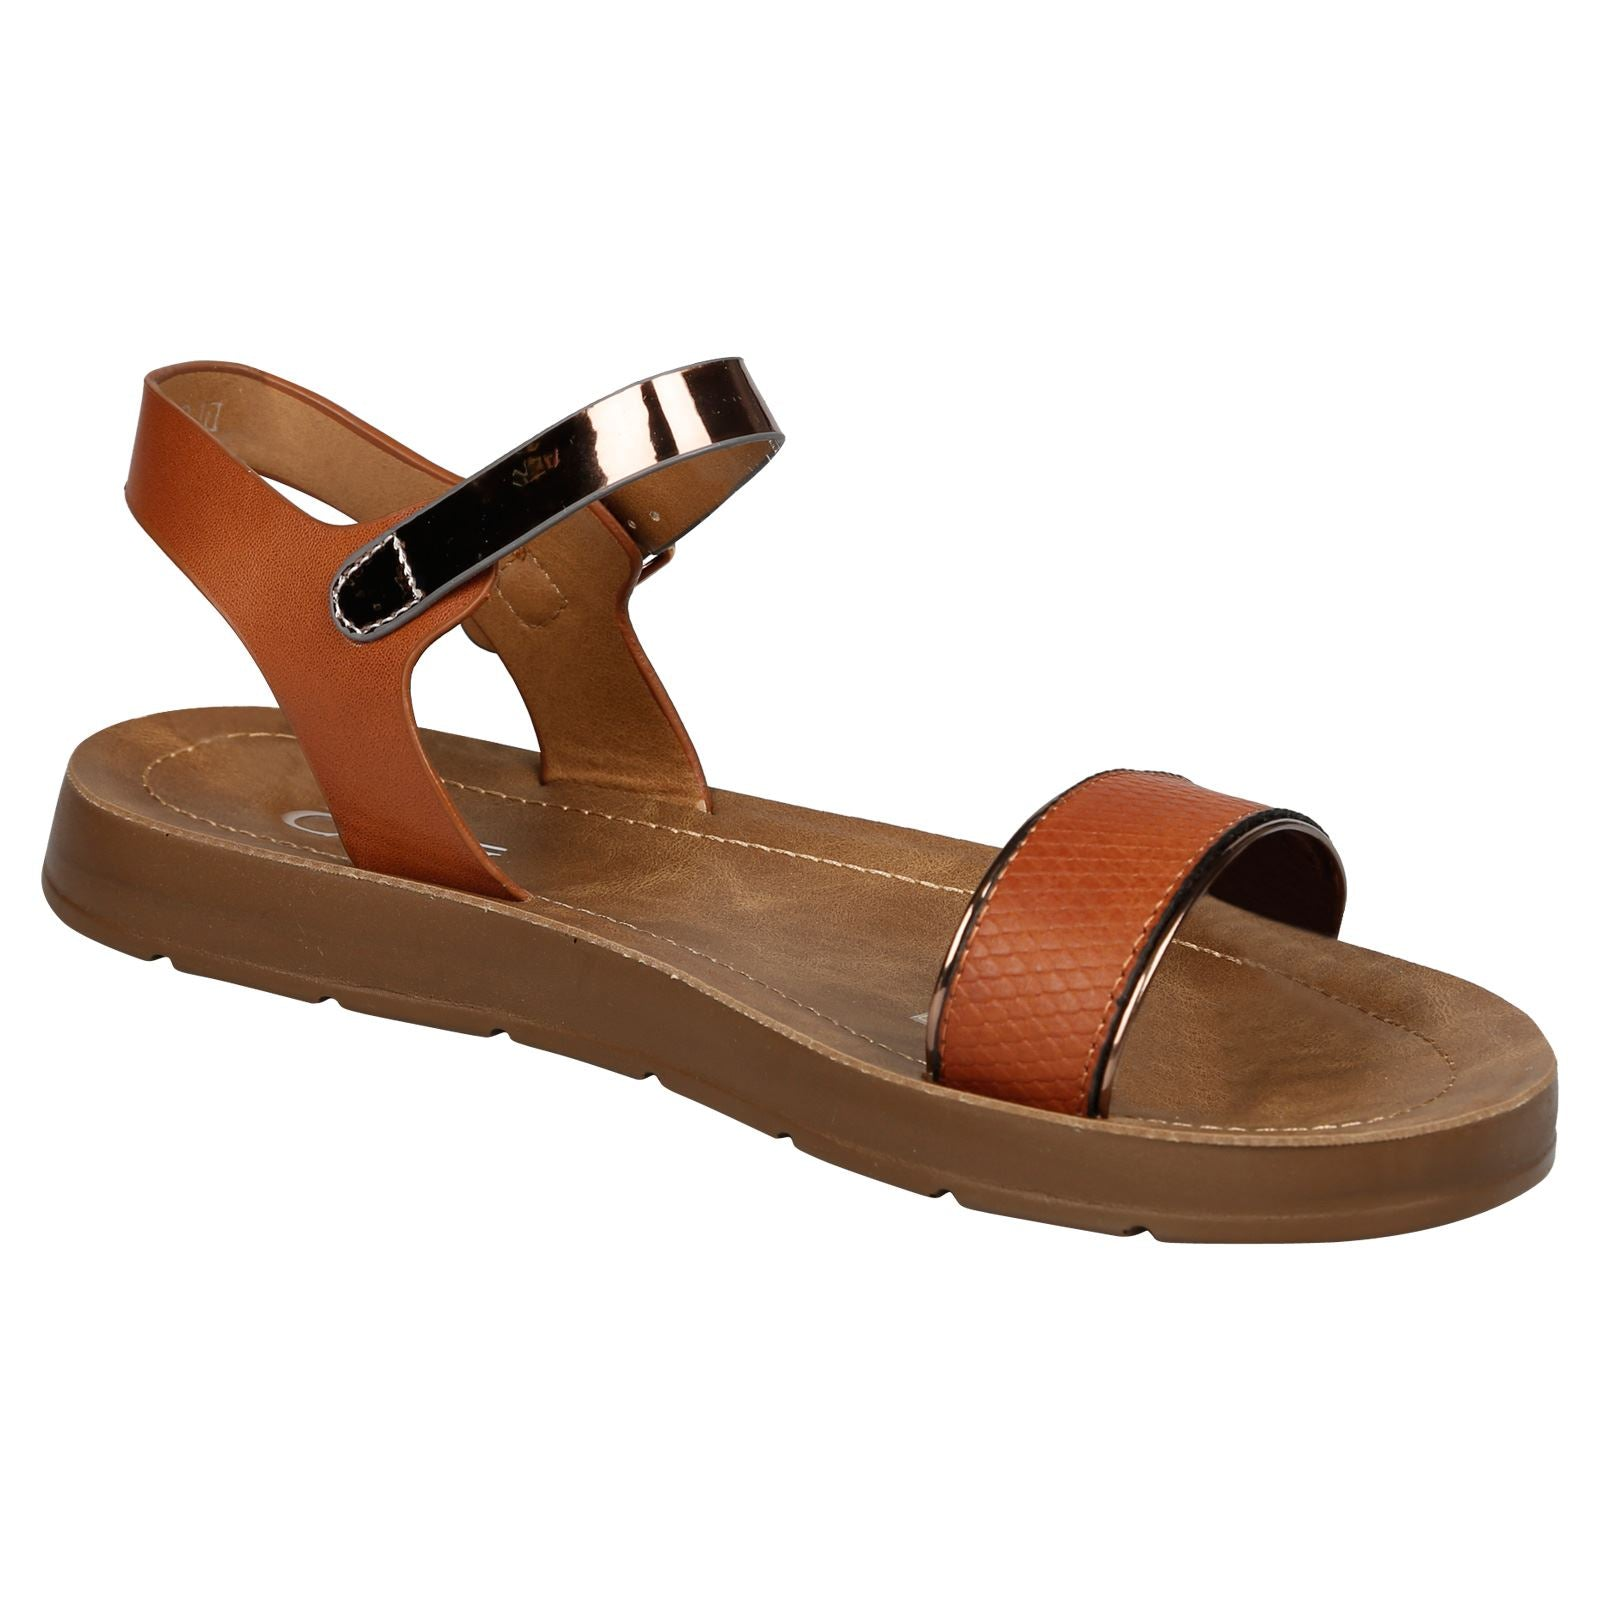 Joselyen Two Tone Footbed Sandals in Camel